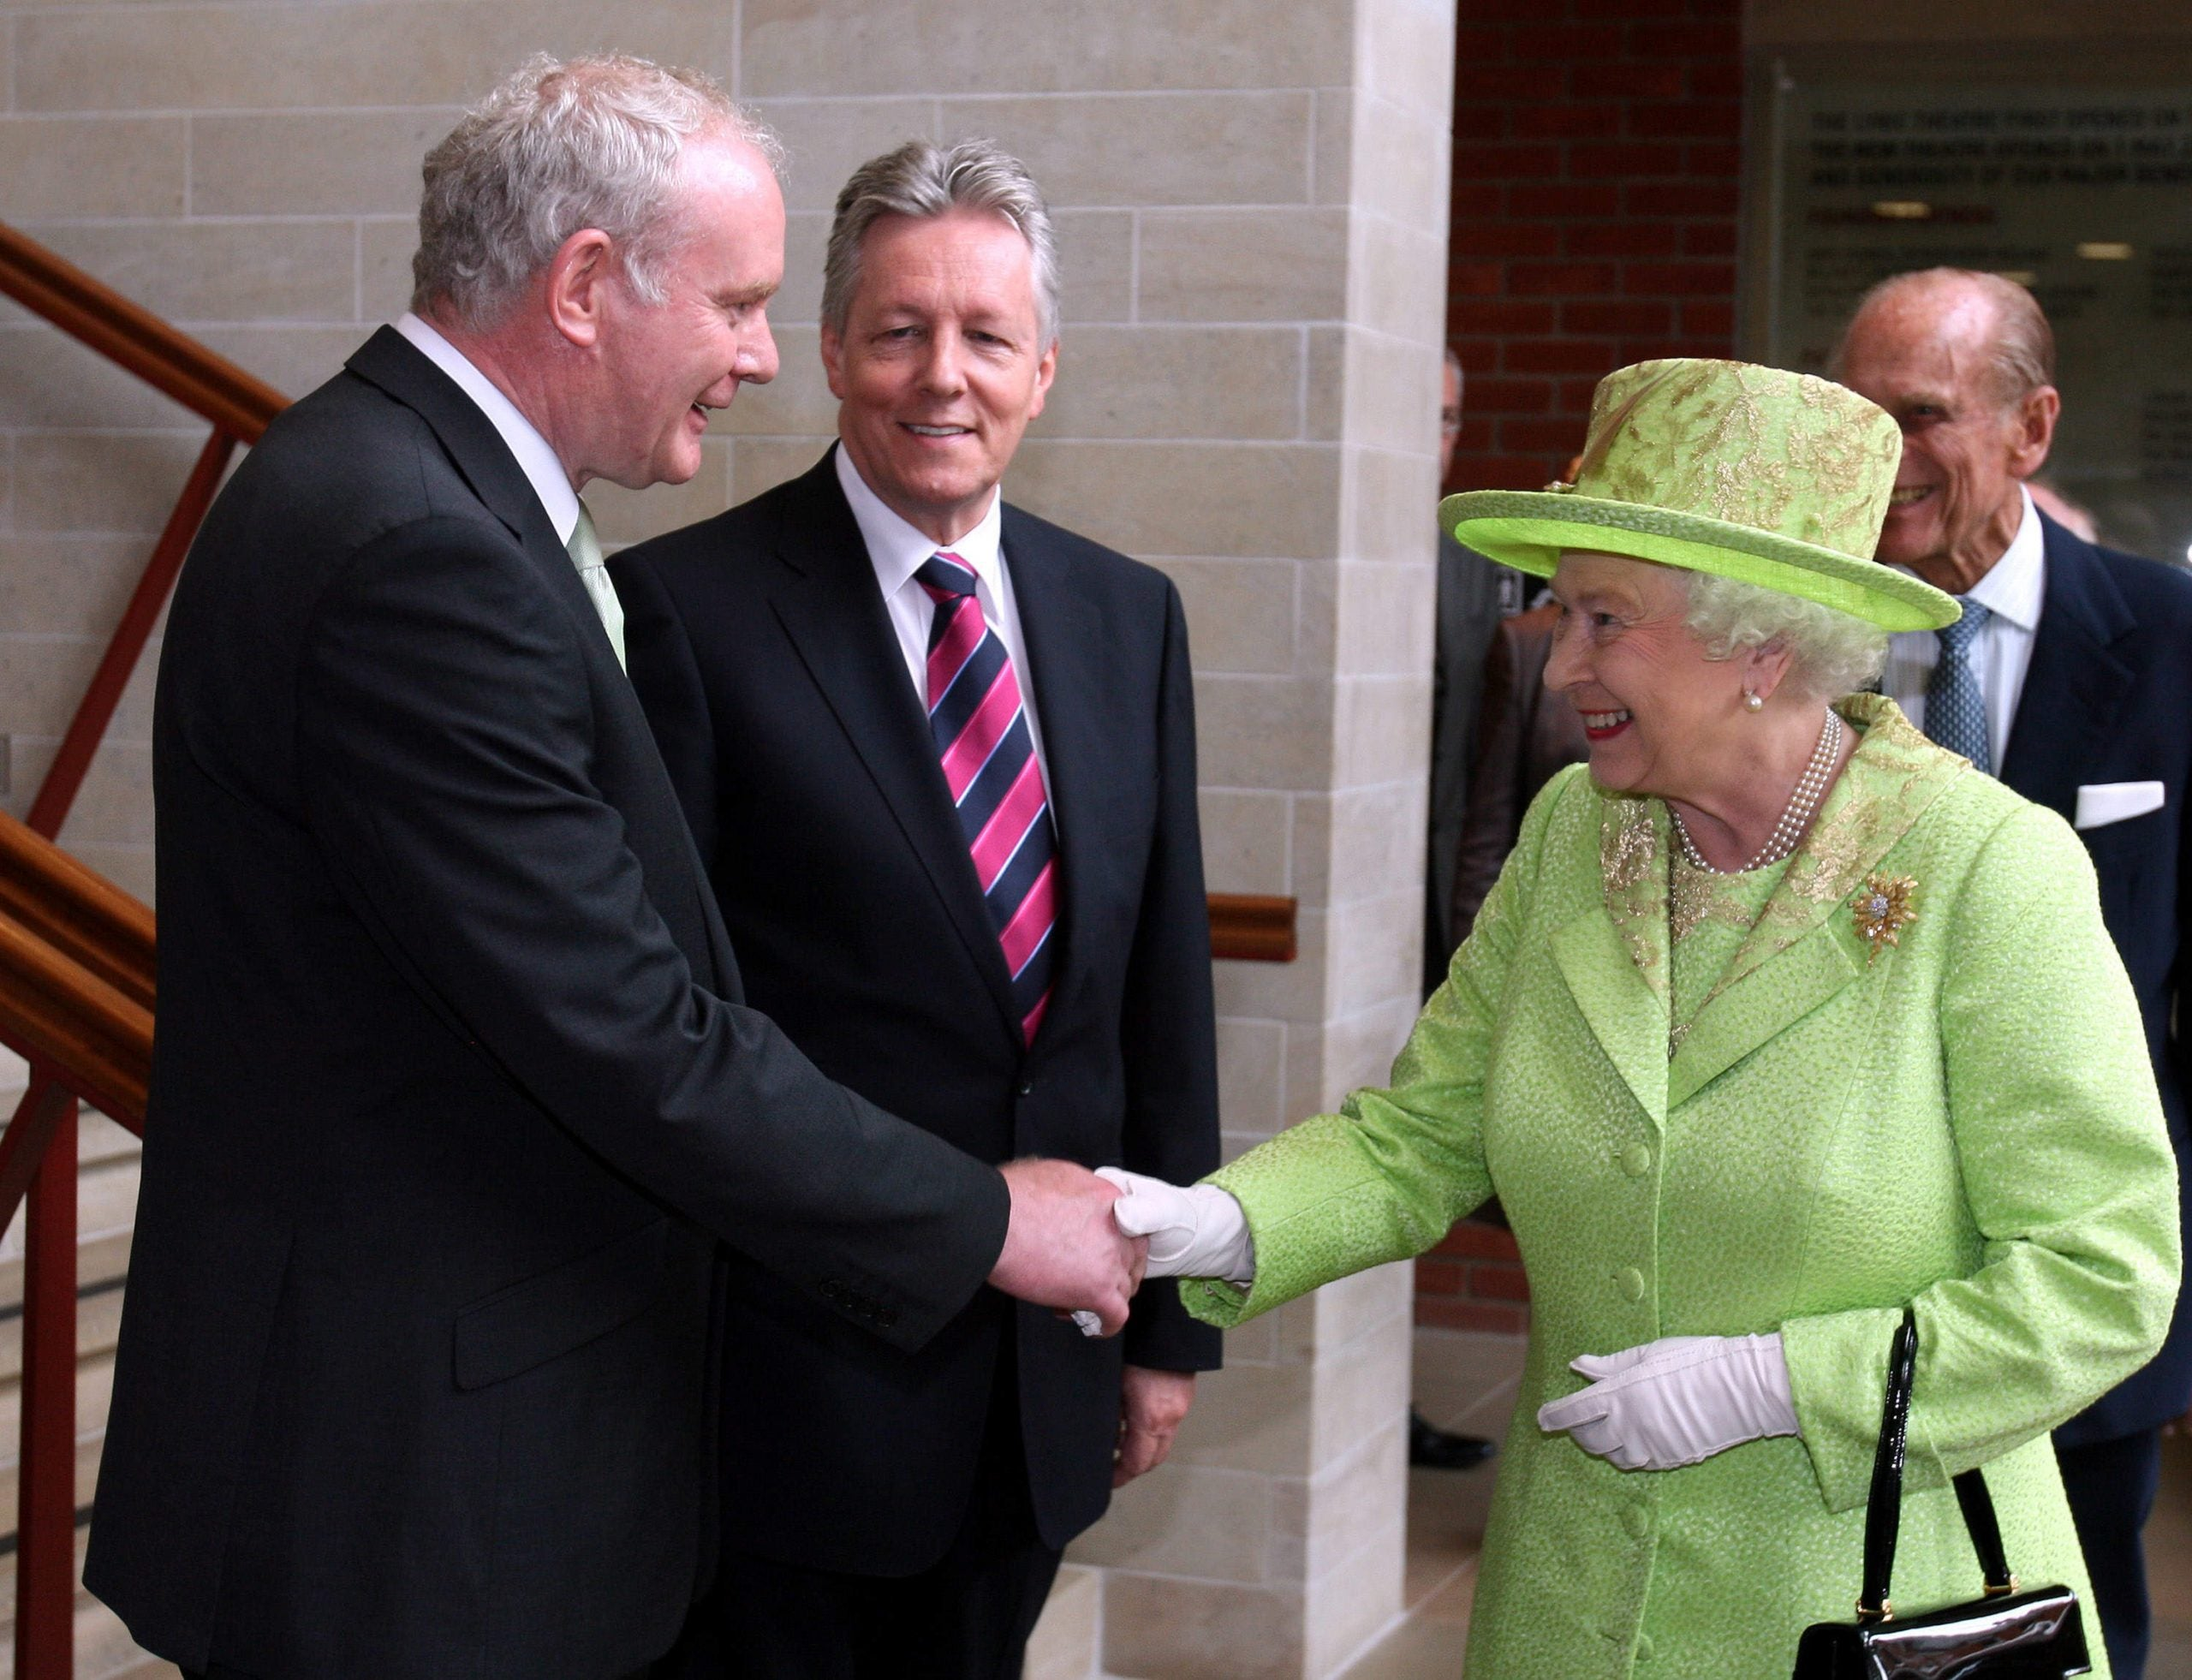 How Martin McGuiness went from paramilitary to peacemaker